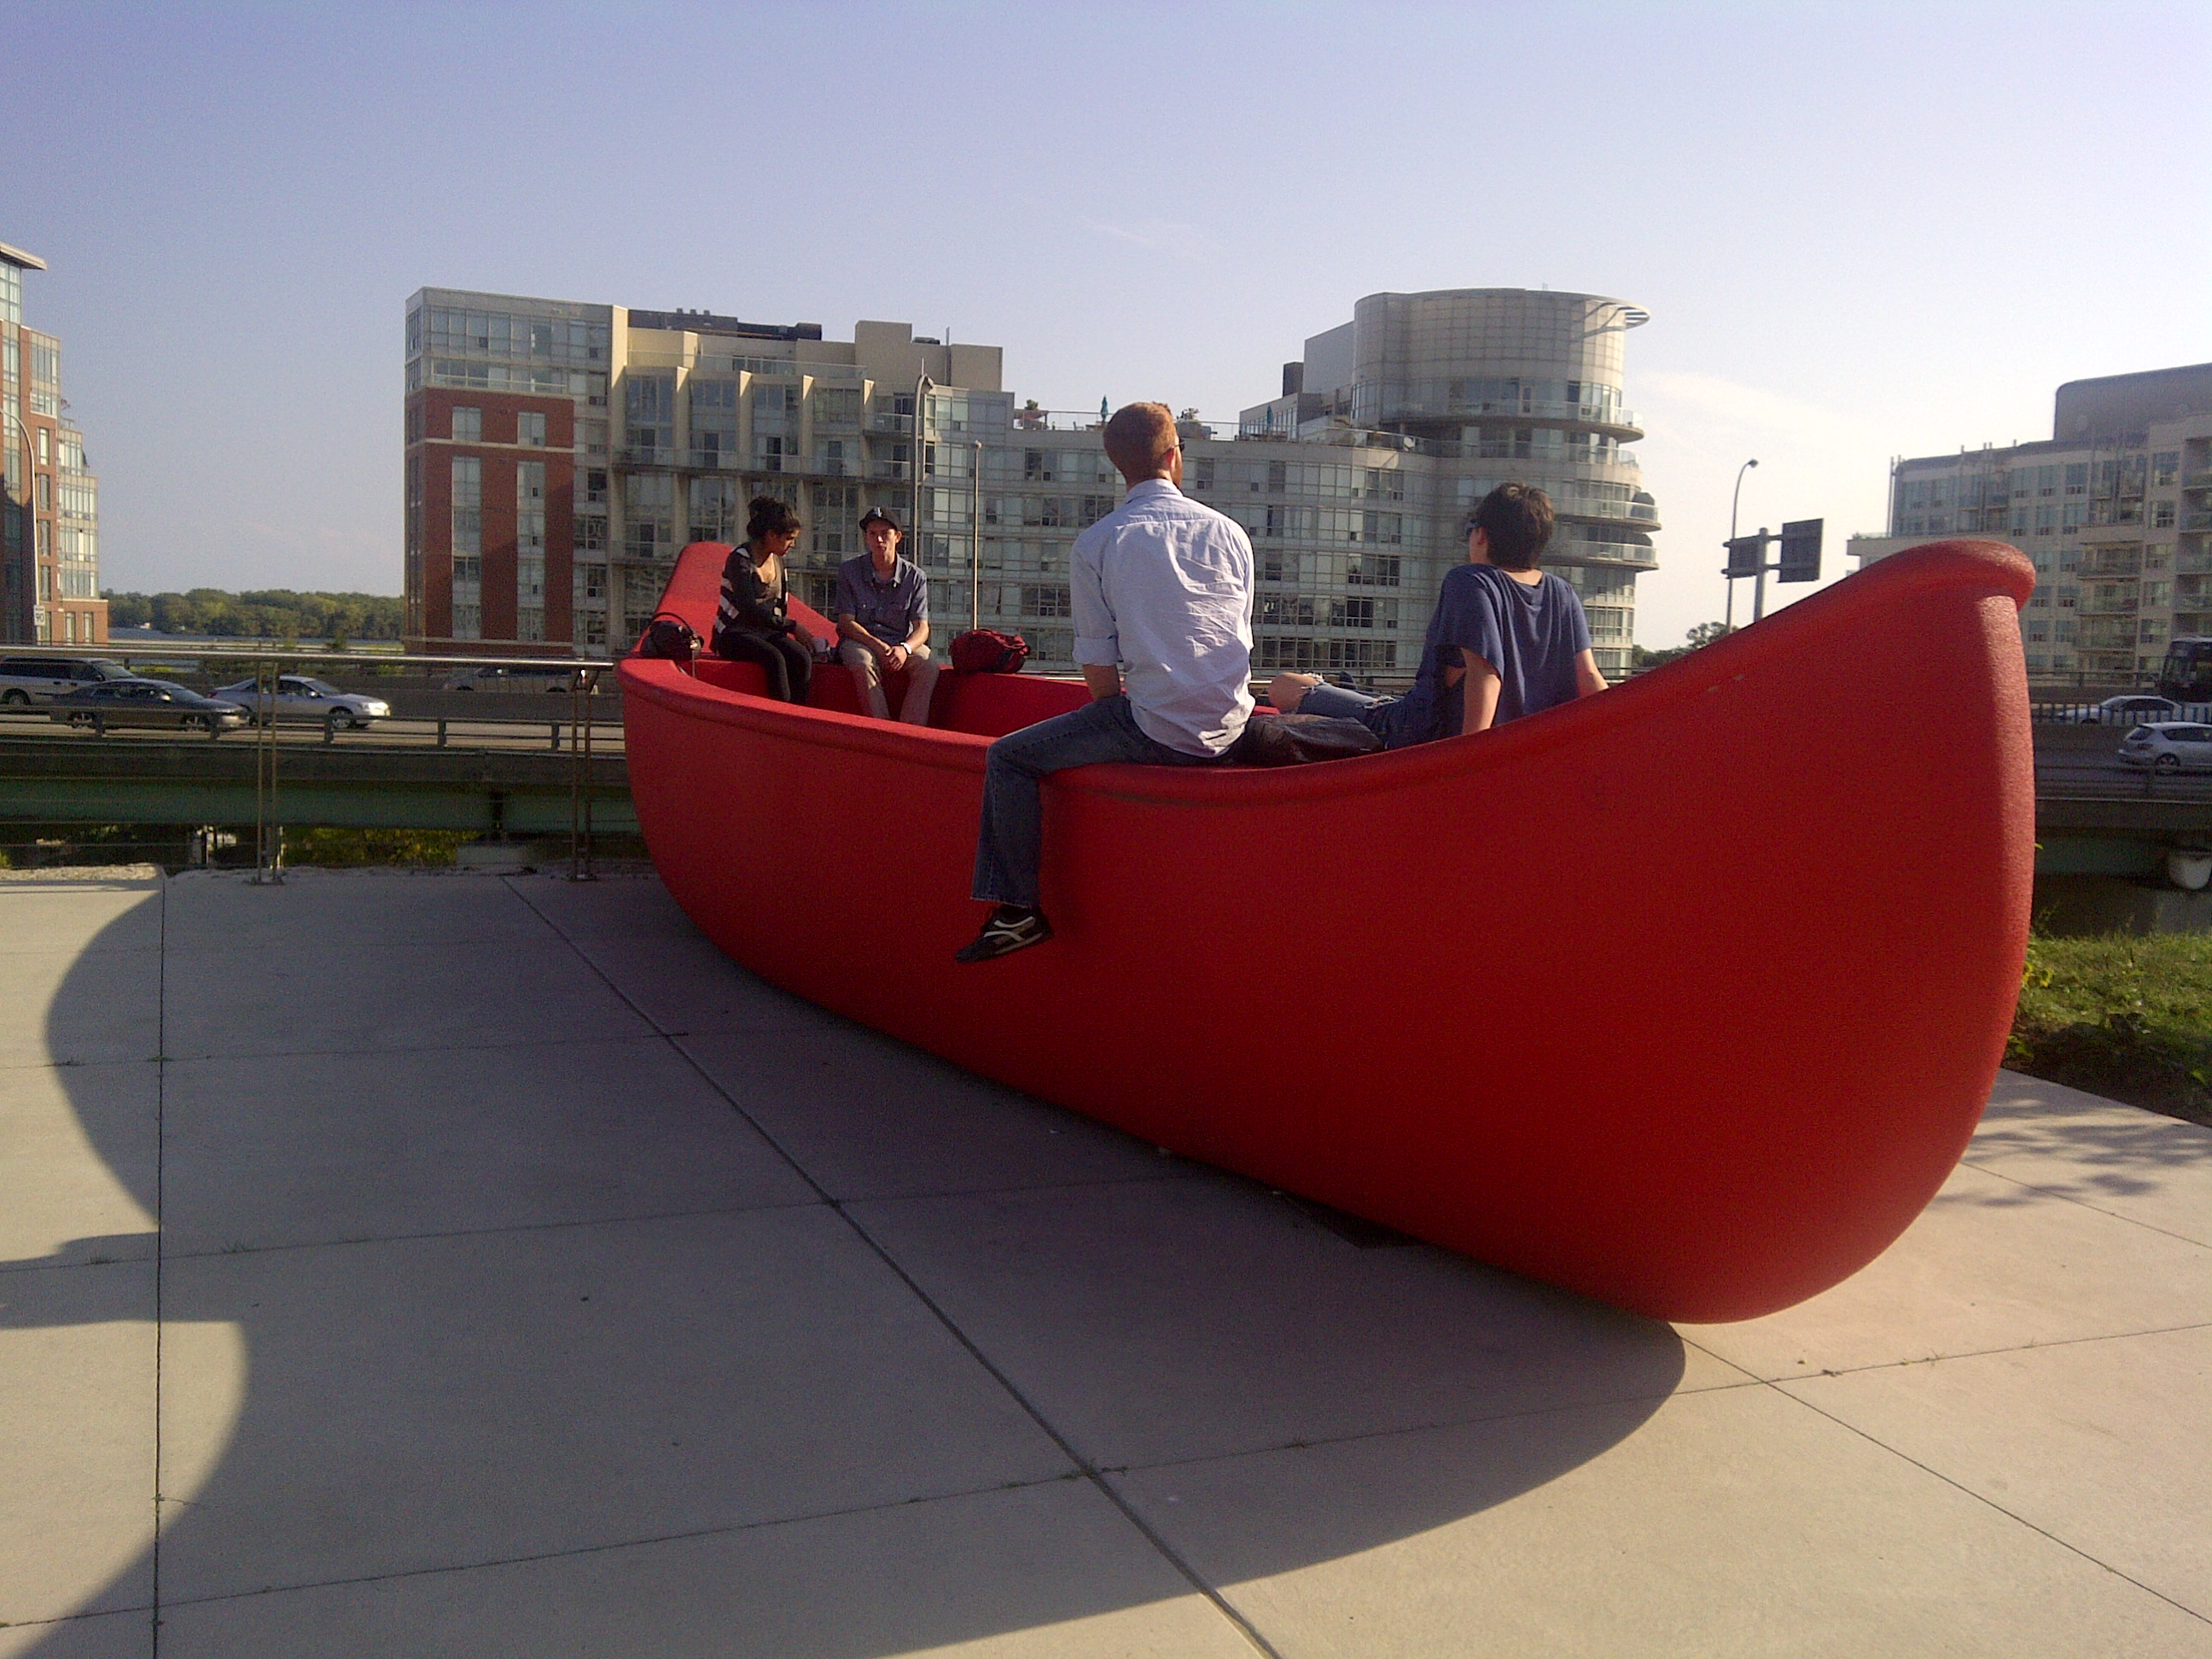 Big red canoe at canoe landing park exploring toronto for The big canoe